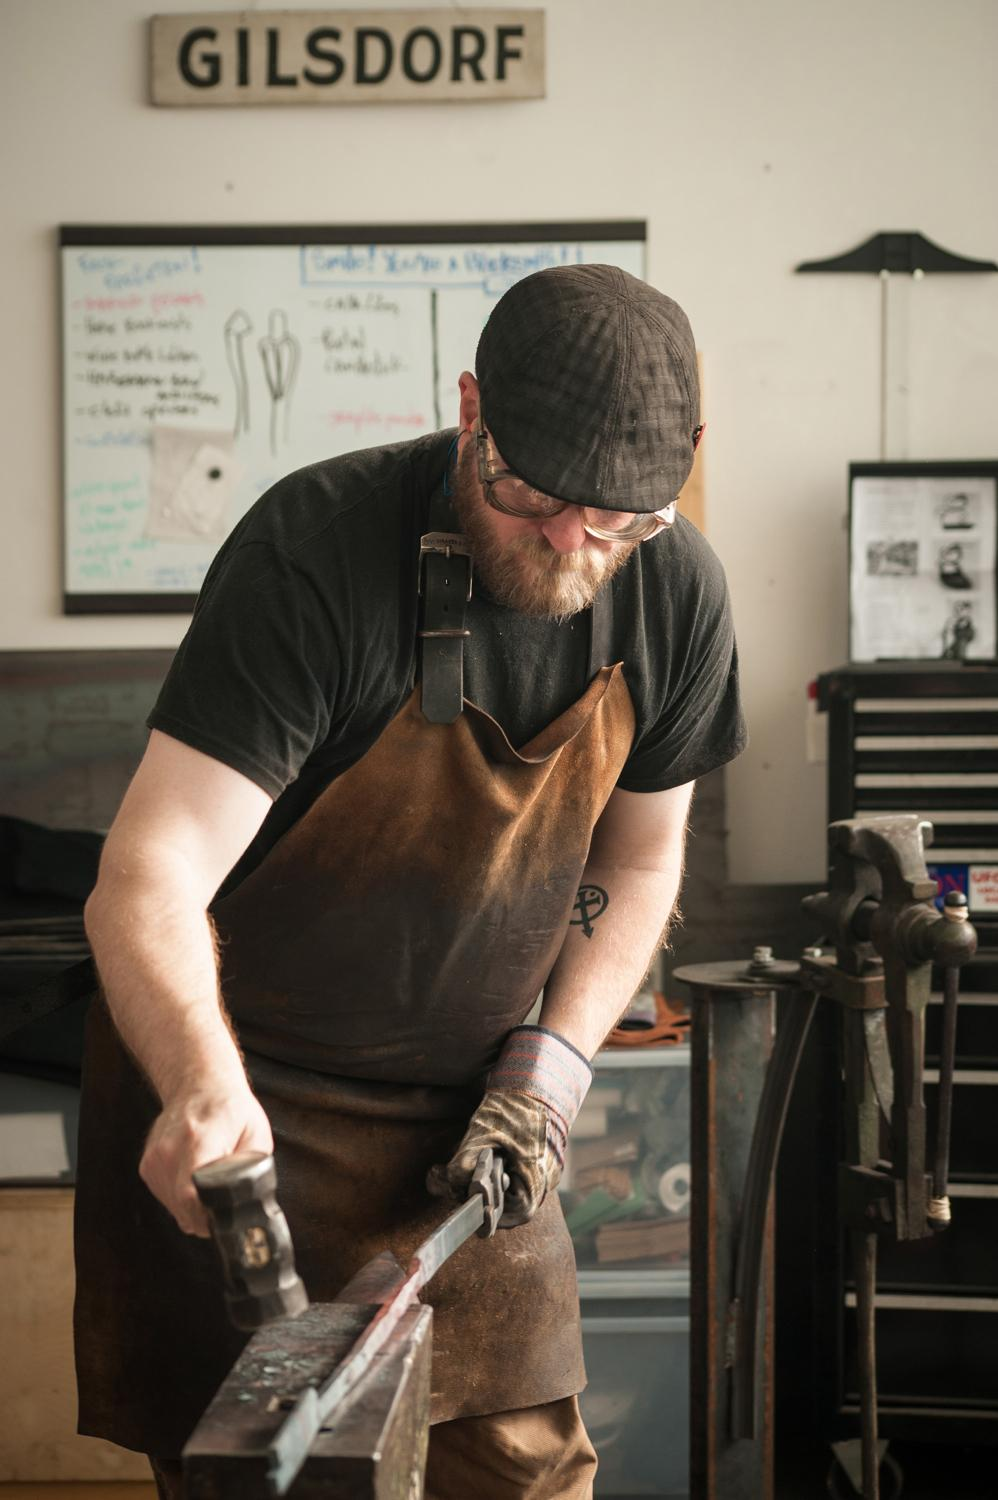 Mark Gilsdorf works on a piece of steel in his studio in the Essex Art Studios. Gilsdorf began learning the craft in 2007 and became a full-time blacksmith in 2013. / Image: Melissa Doss Sliney